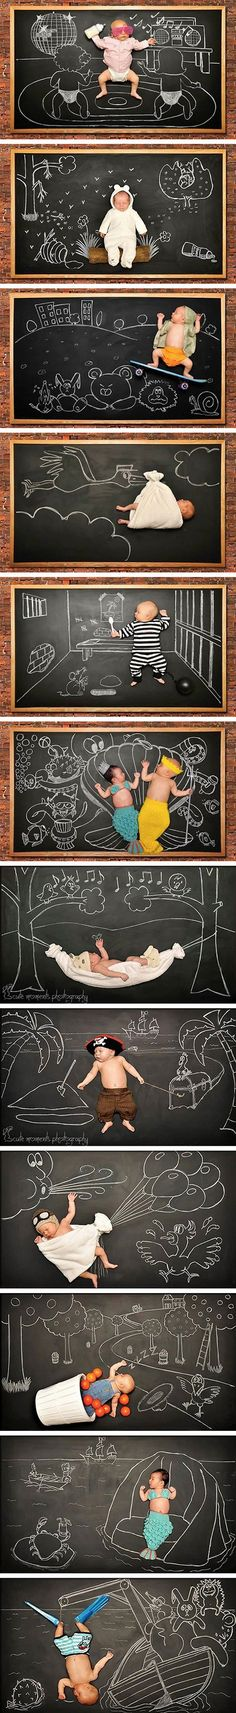 Chalkboard baby photos-some of these are cute while others look stupid